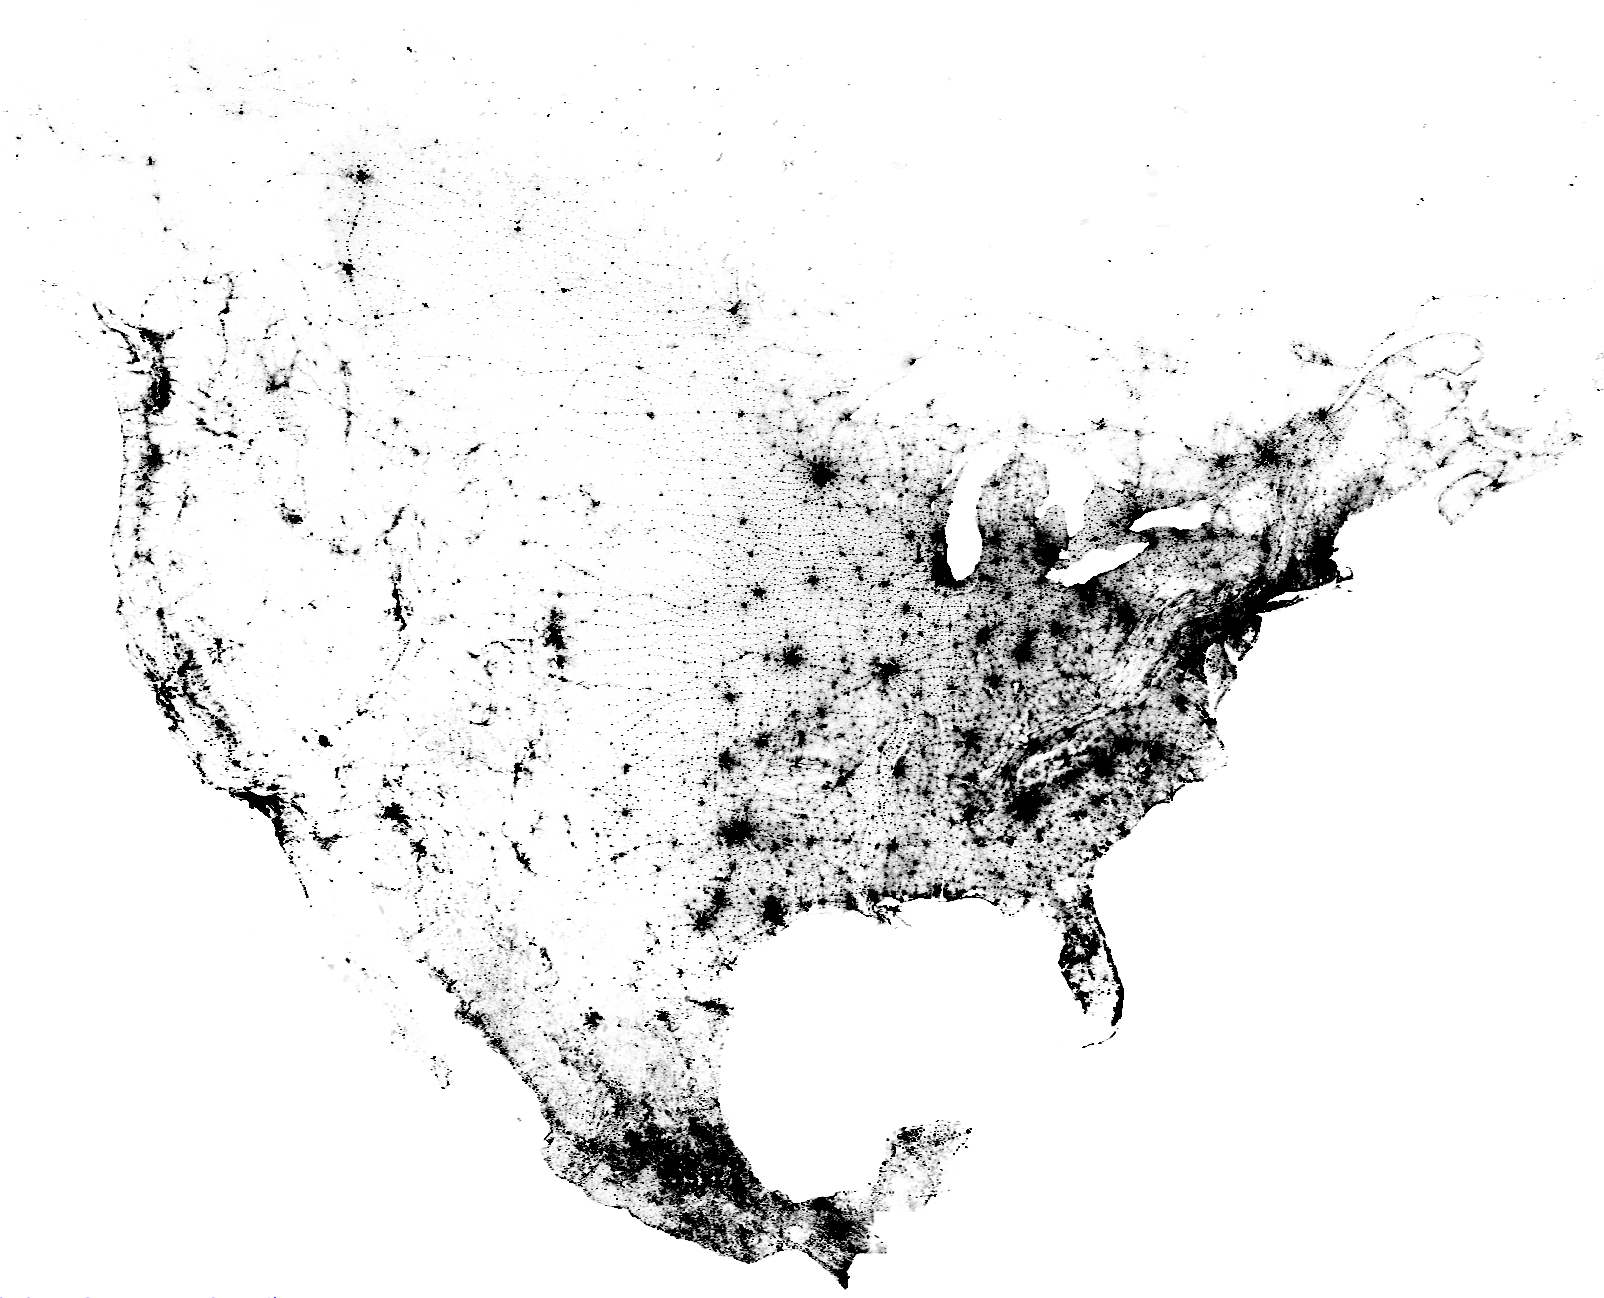 Us Census Dot Map Pin on Mapping